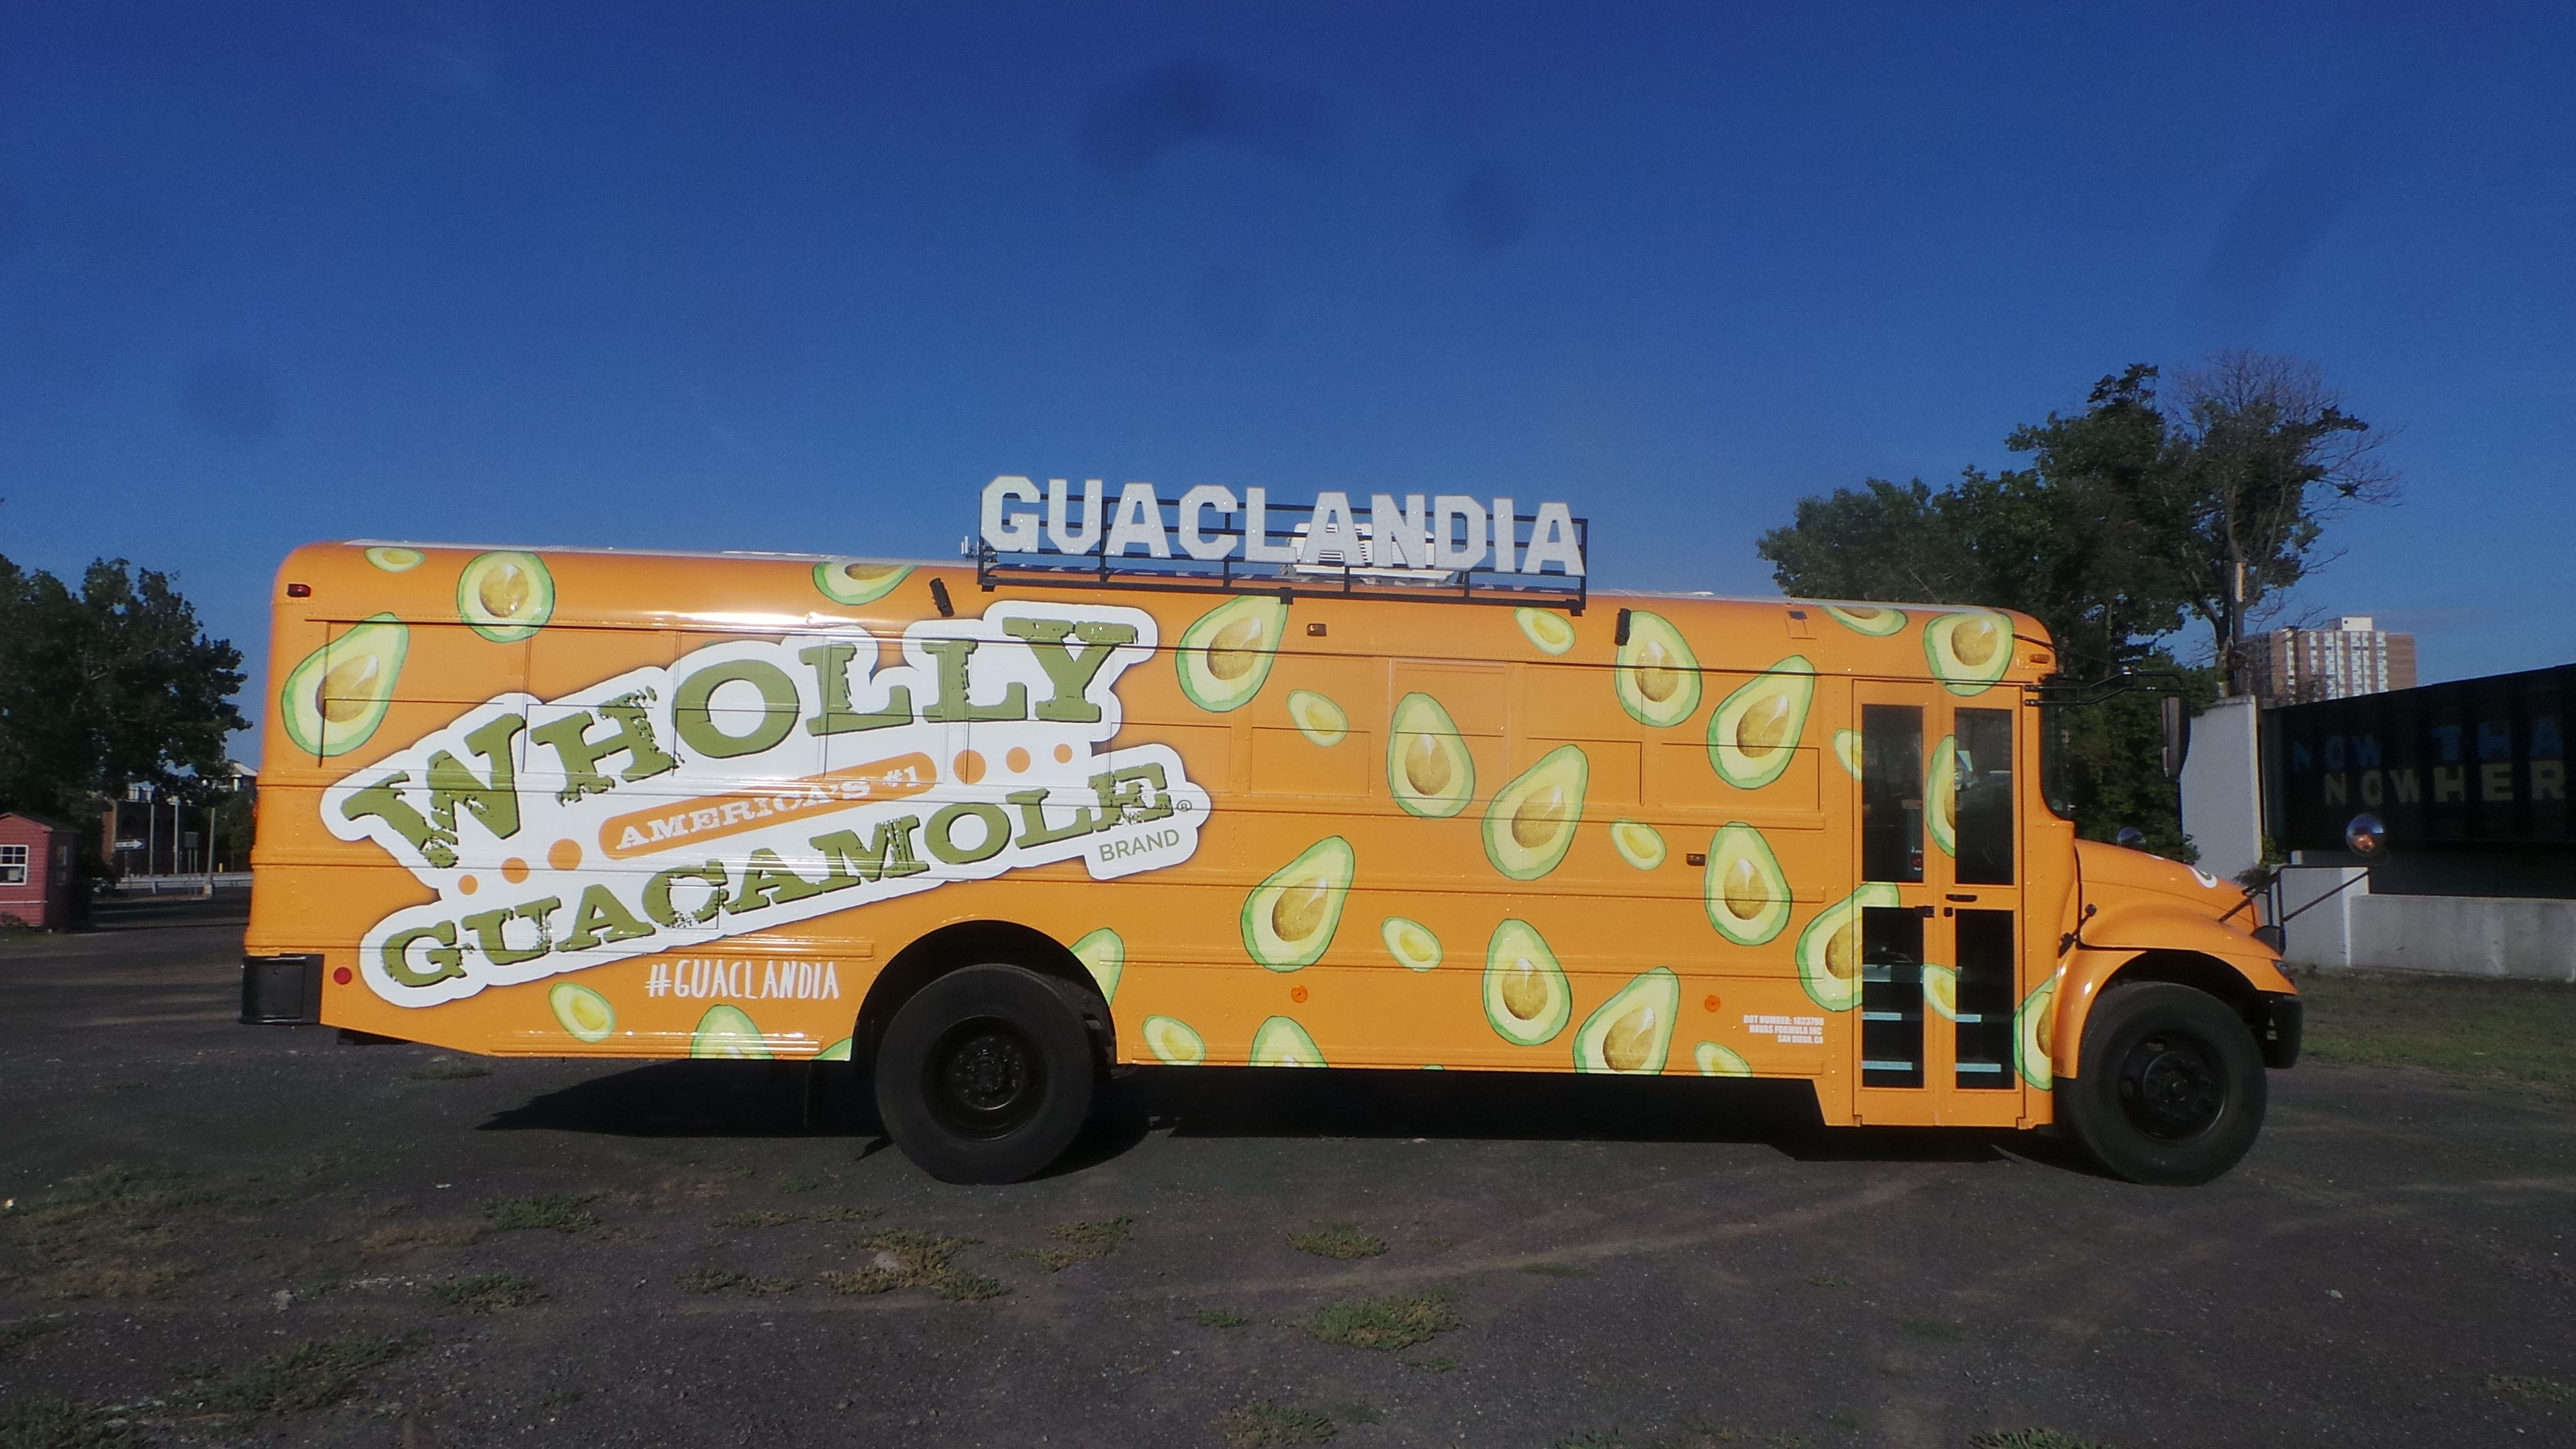 Guaclandia is free and will feature unlimited samples of guacamole, including the new Wholly Guacamole Snack Cups.